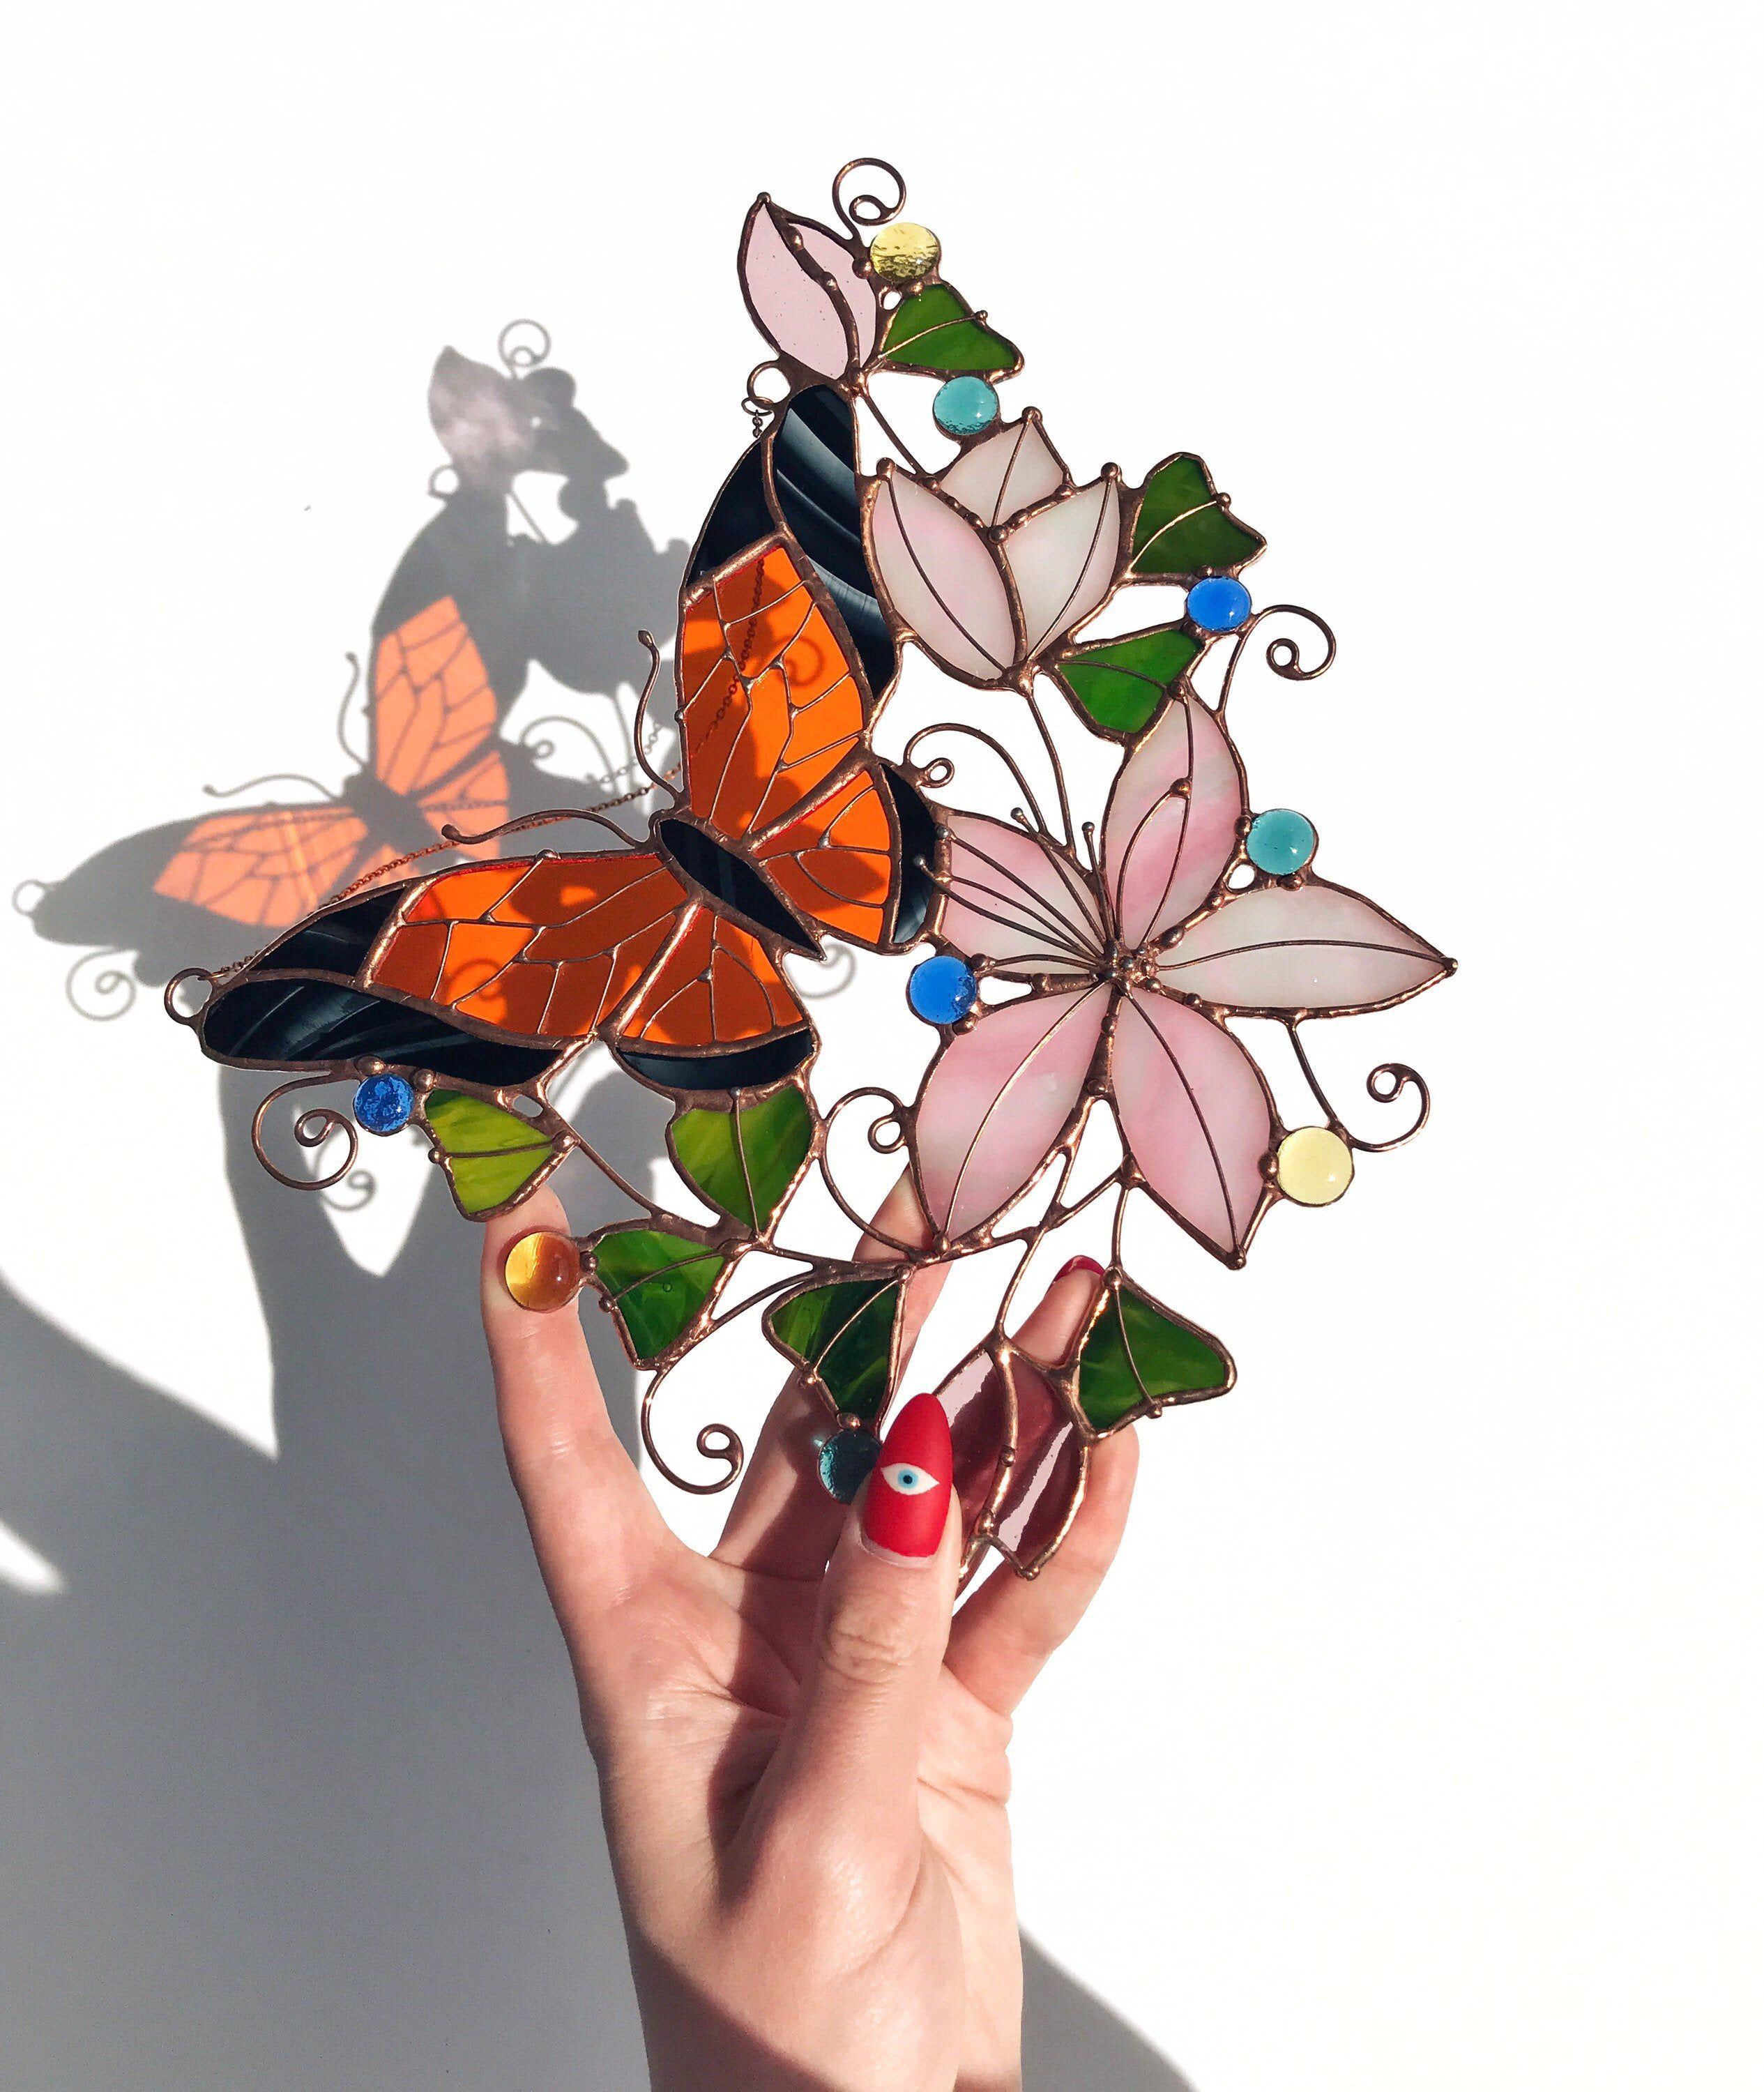 Excited to share the latest addition to my #etsy shop: Rainbow Suncatcher Monarch Butterfly Flower Glass Picture Home House Decor Panel Ornament Garden Window Wall Hanging Light Cling Pendant #pink #birthday #passover #stainedglass #orange #craft #artdeco #homedecorkitchen #wallflowerssign